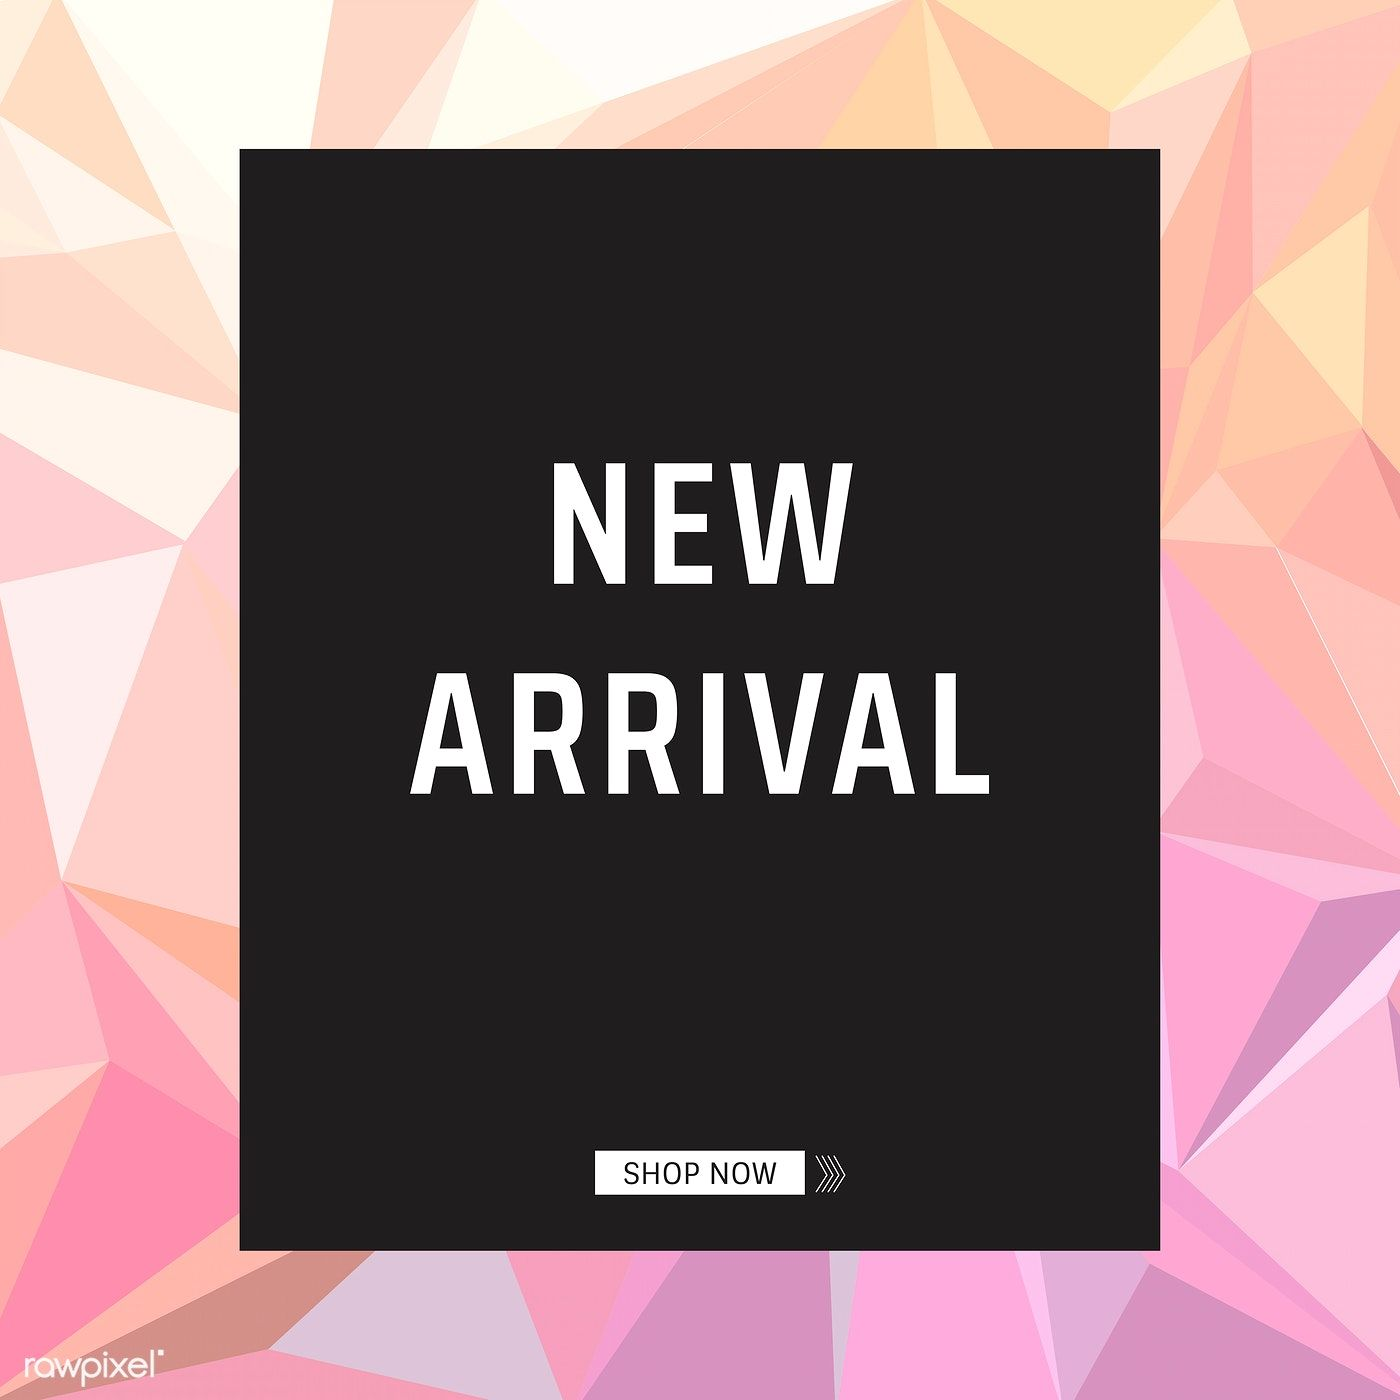 New arrival product announcement poster vector   free image by ...